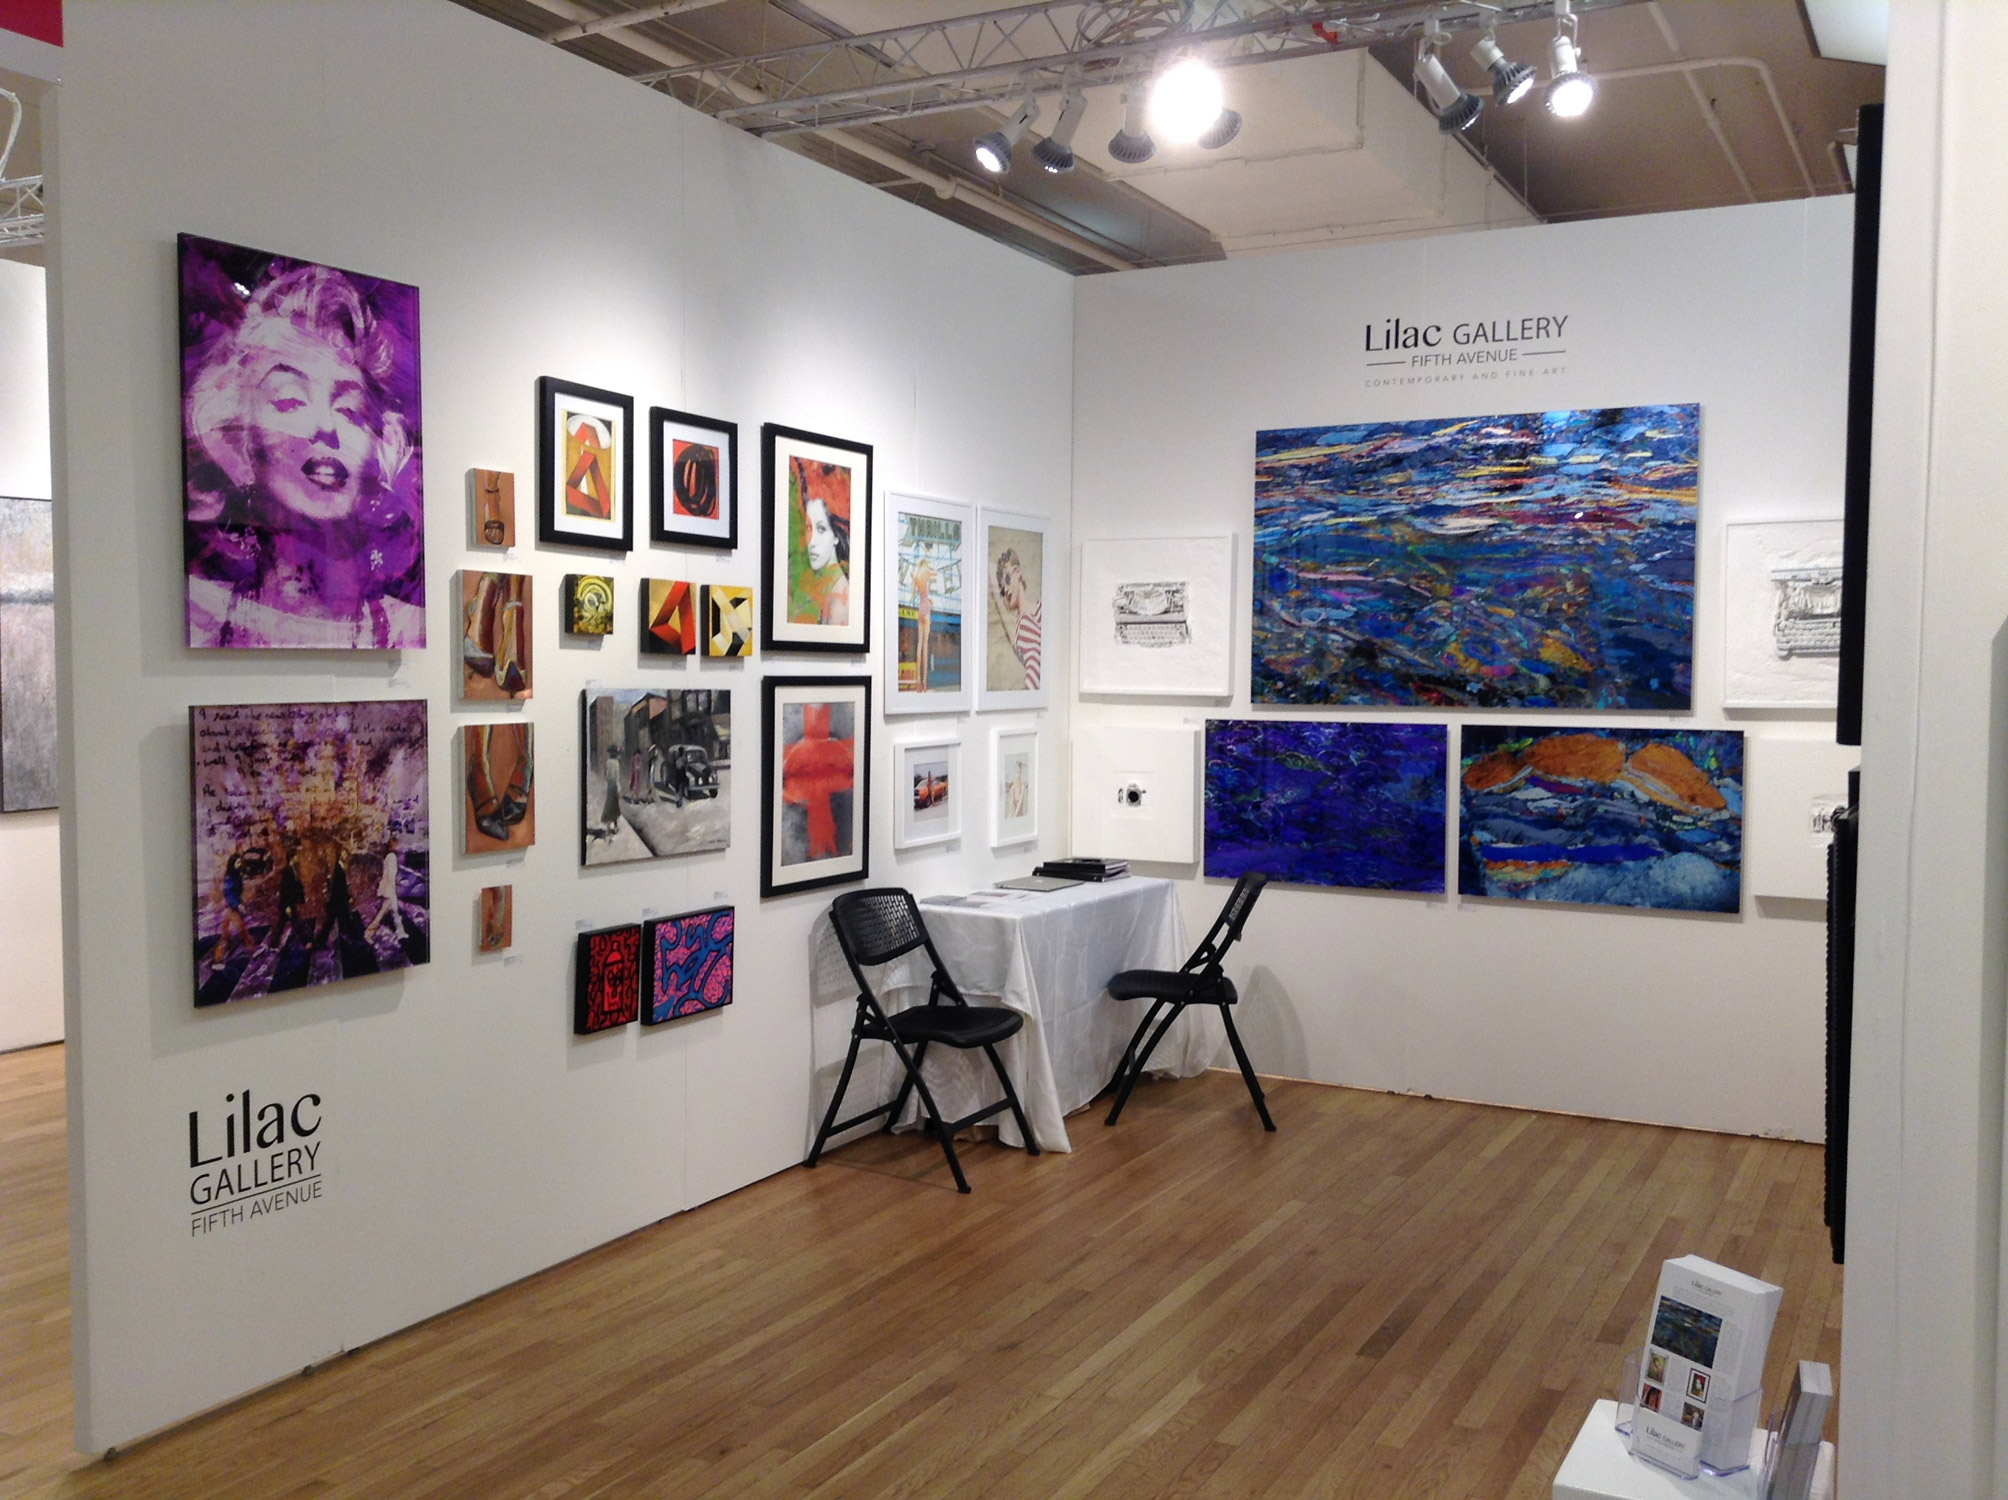 AFFORDABLE ART FAIR NYC Spring 2015 - INSTALLATION VIEW